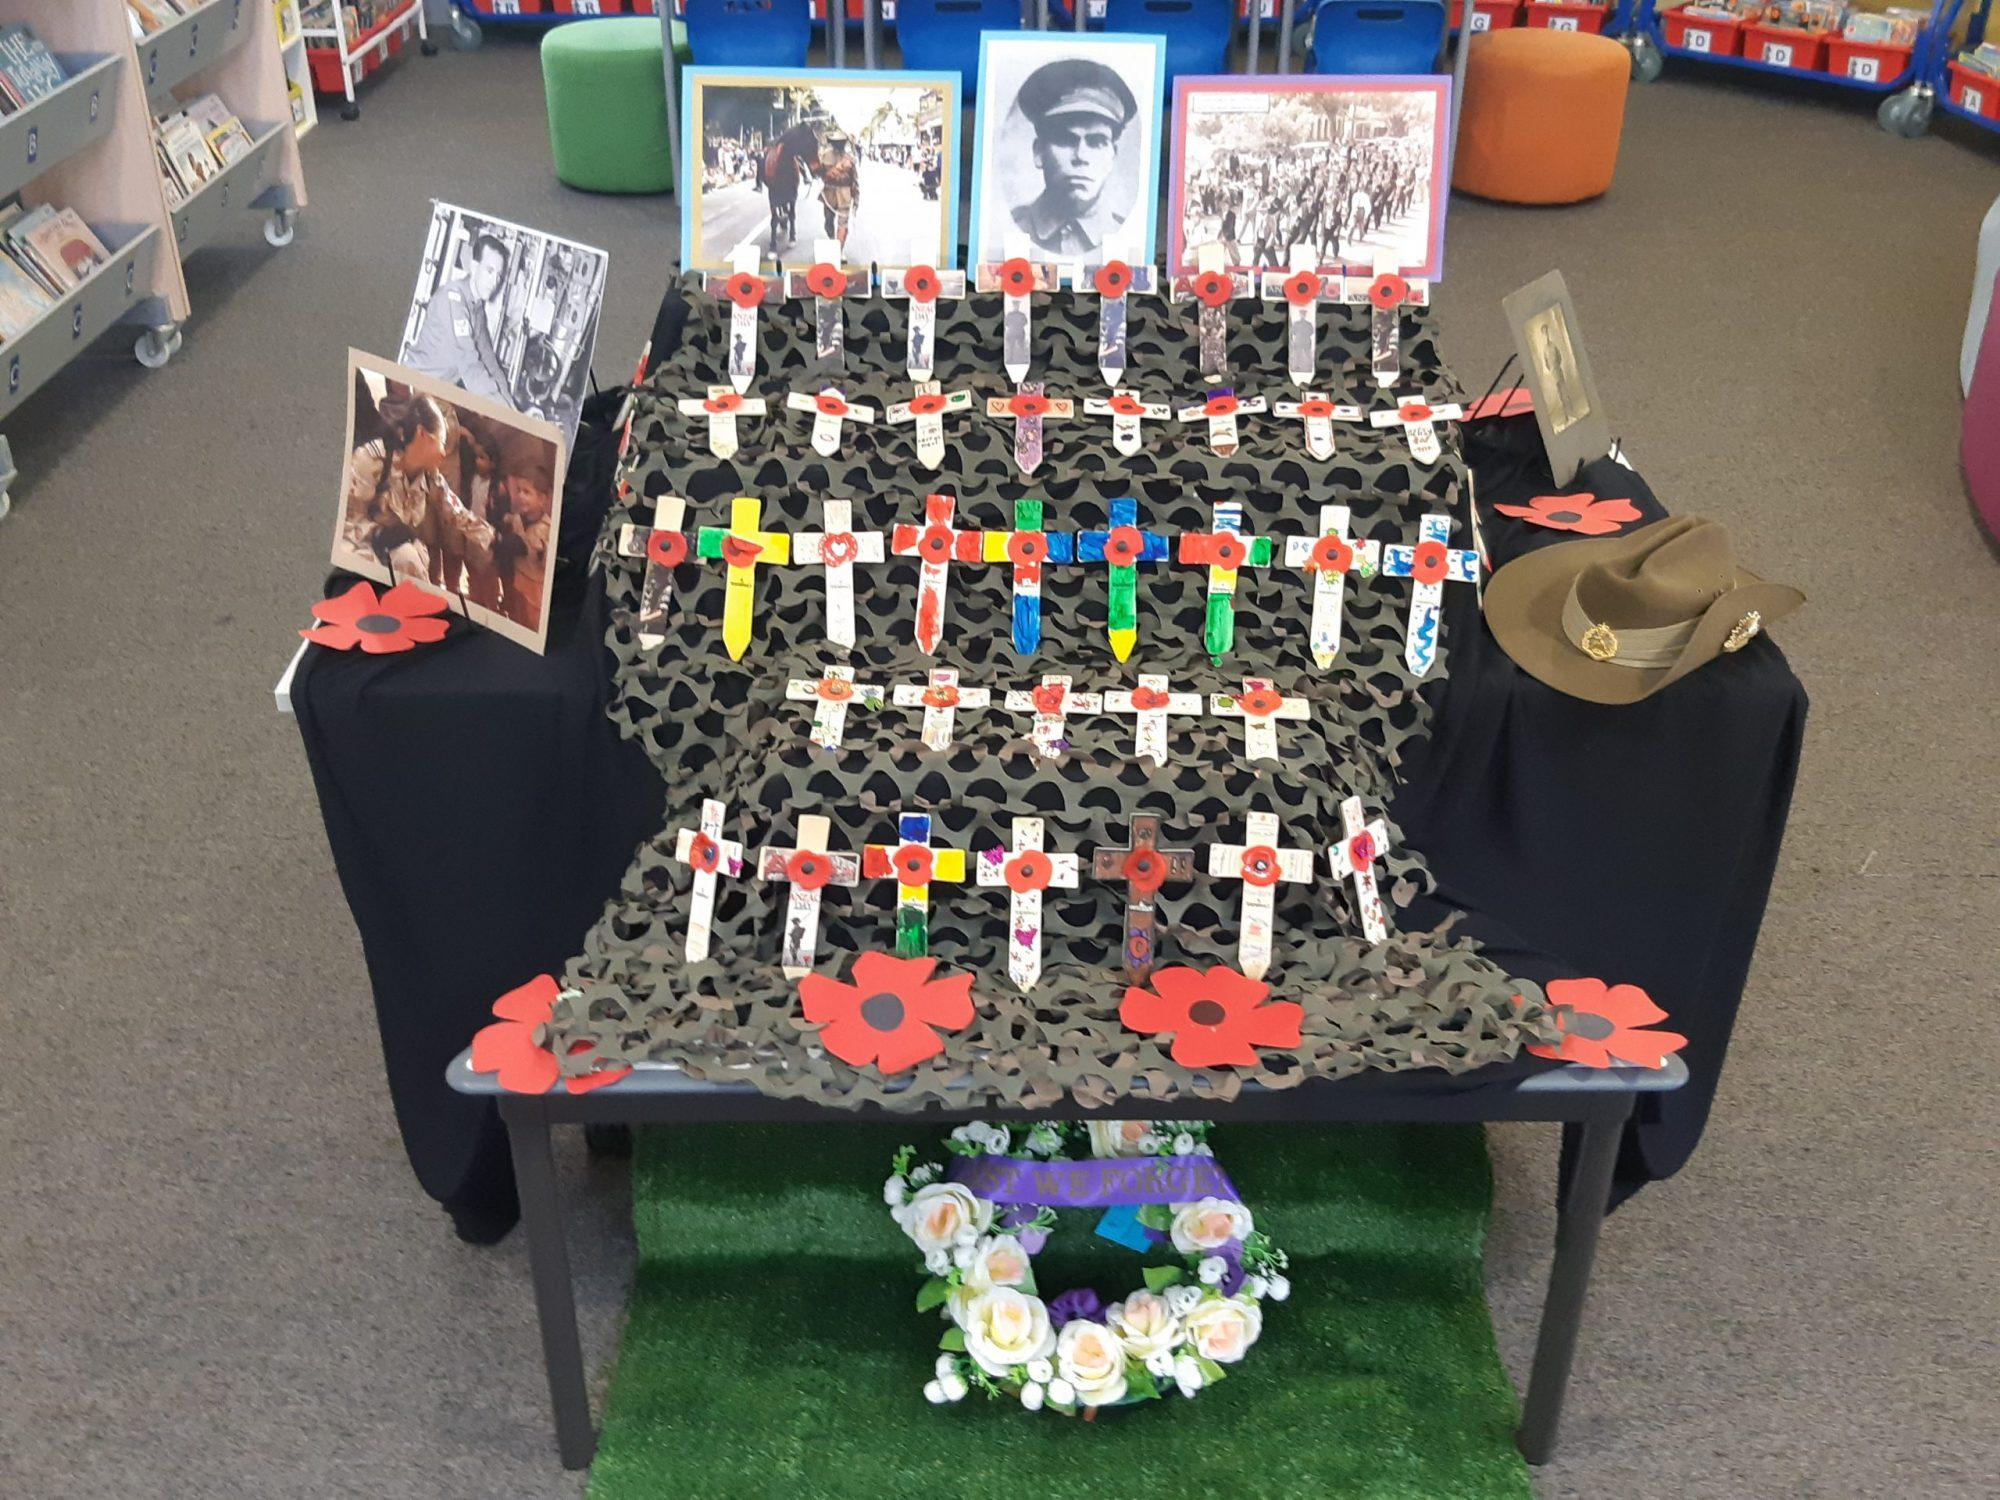 Photo courtesy of Heather Cochrane: Our Lady of Help Christian School ANZAC Day display